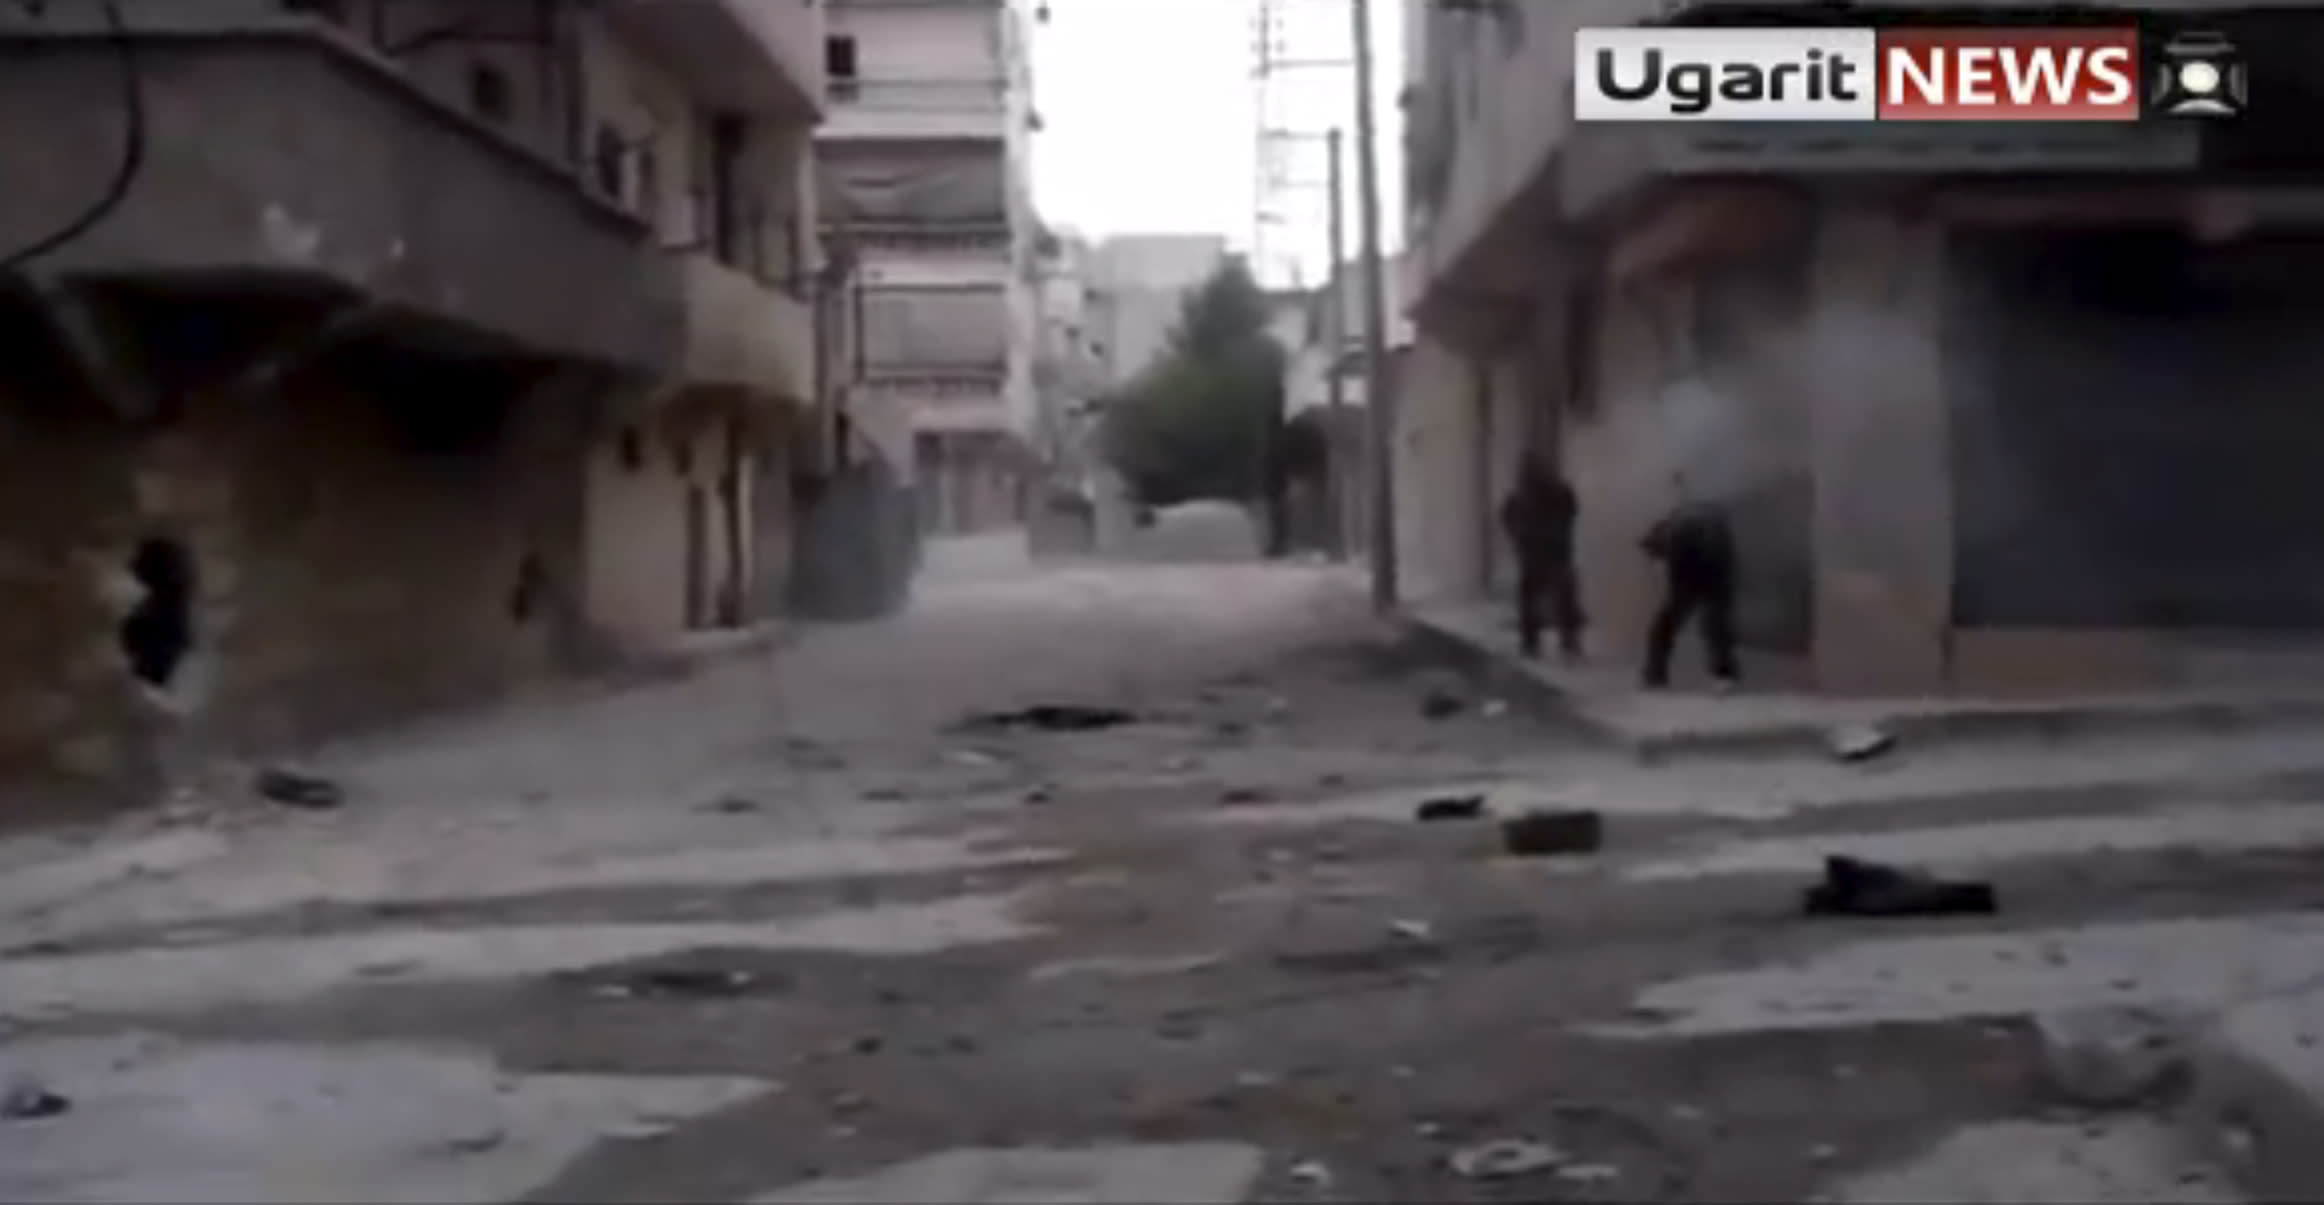 This image made from video provided by Ugarit and accessed via AP video purports to show Syrian rebels clashing with Syrian forces in Aleppo, Syria, Friday, Aug. 31, 2012. Syrian rebels have begun a major operation in the Aleppo region, aiming to strike at security compounds and bases around Syria's largest city, activists said Friday. It would be evidence that weeks of intense bombardments by the Syrian military, including airstrikes, have failed to dislodge the rebels. Instead, fighting rages across the country in a 17-month civil war that shows no sign of ending soon. (AP Photo/Ugarit via AP video) THE ASSOCIATED PRESS HAS NO WAY OF INDEPENDENTLY VERIFYING THE CONTENT, LOCATION OR DATE OF THIS PICTURE